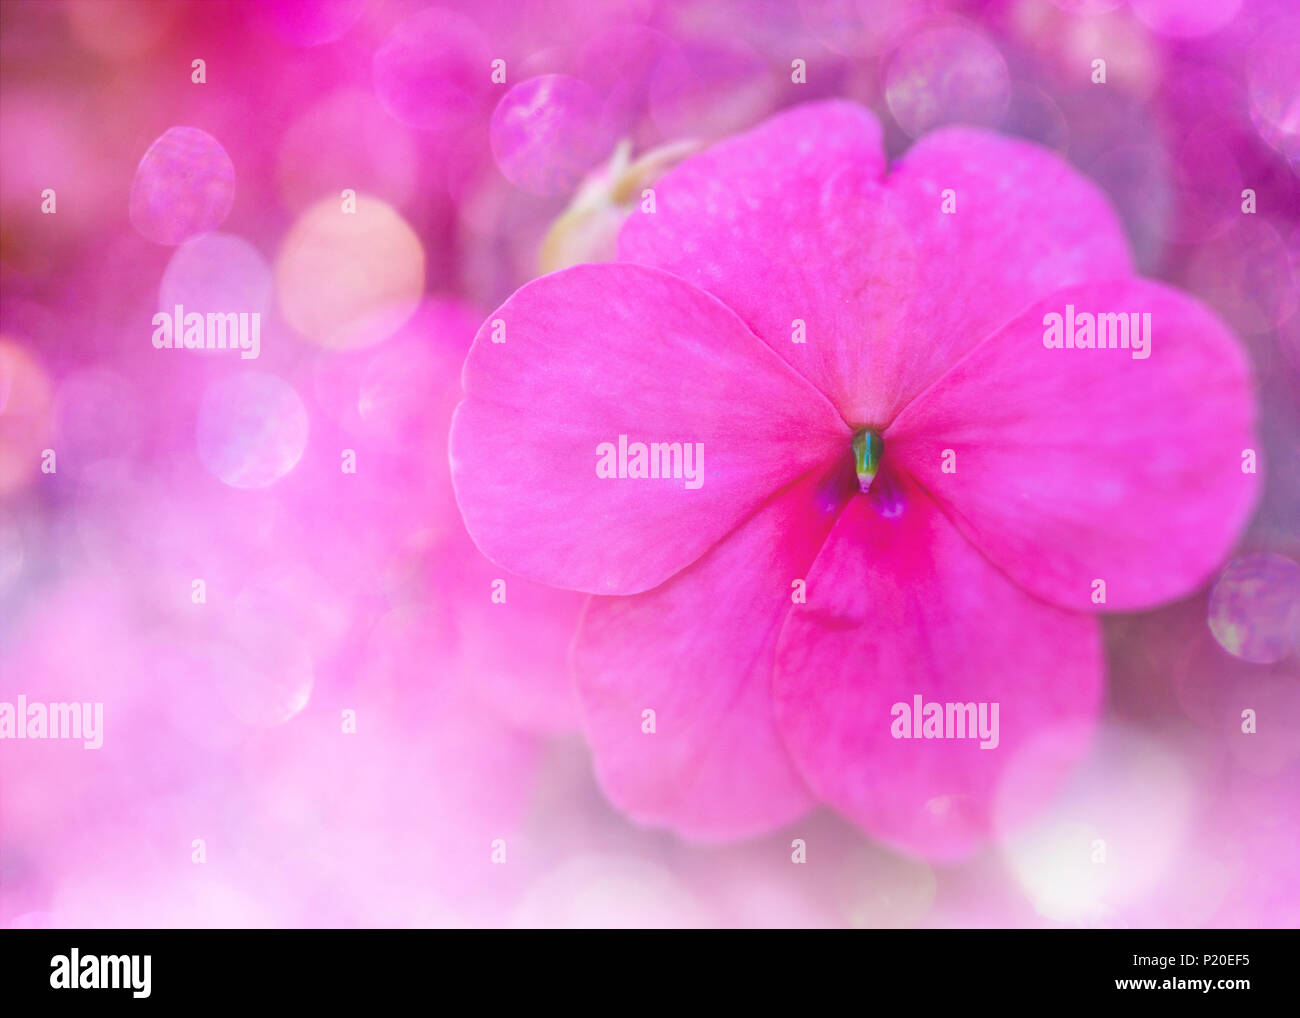 Colourful Glitter Bokeh And Blur Soft Focus Of Pink Impatiens